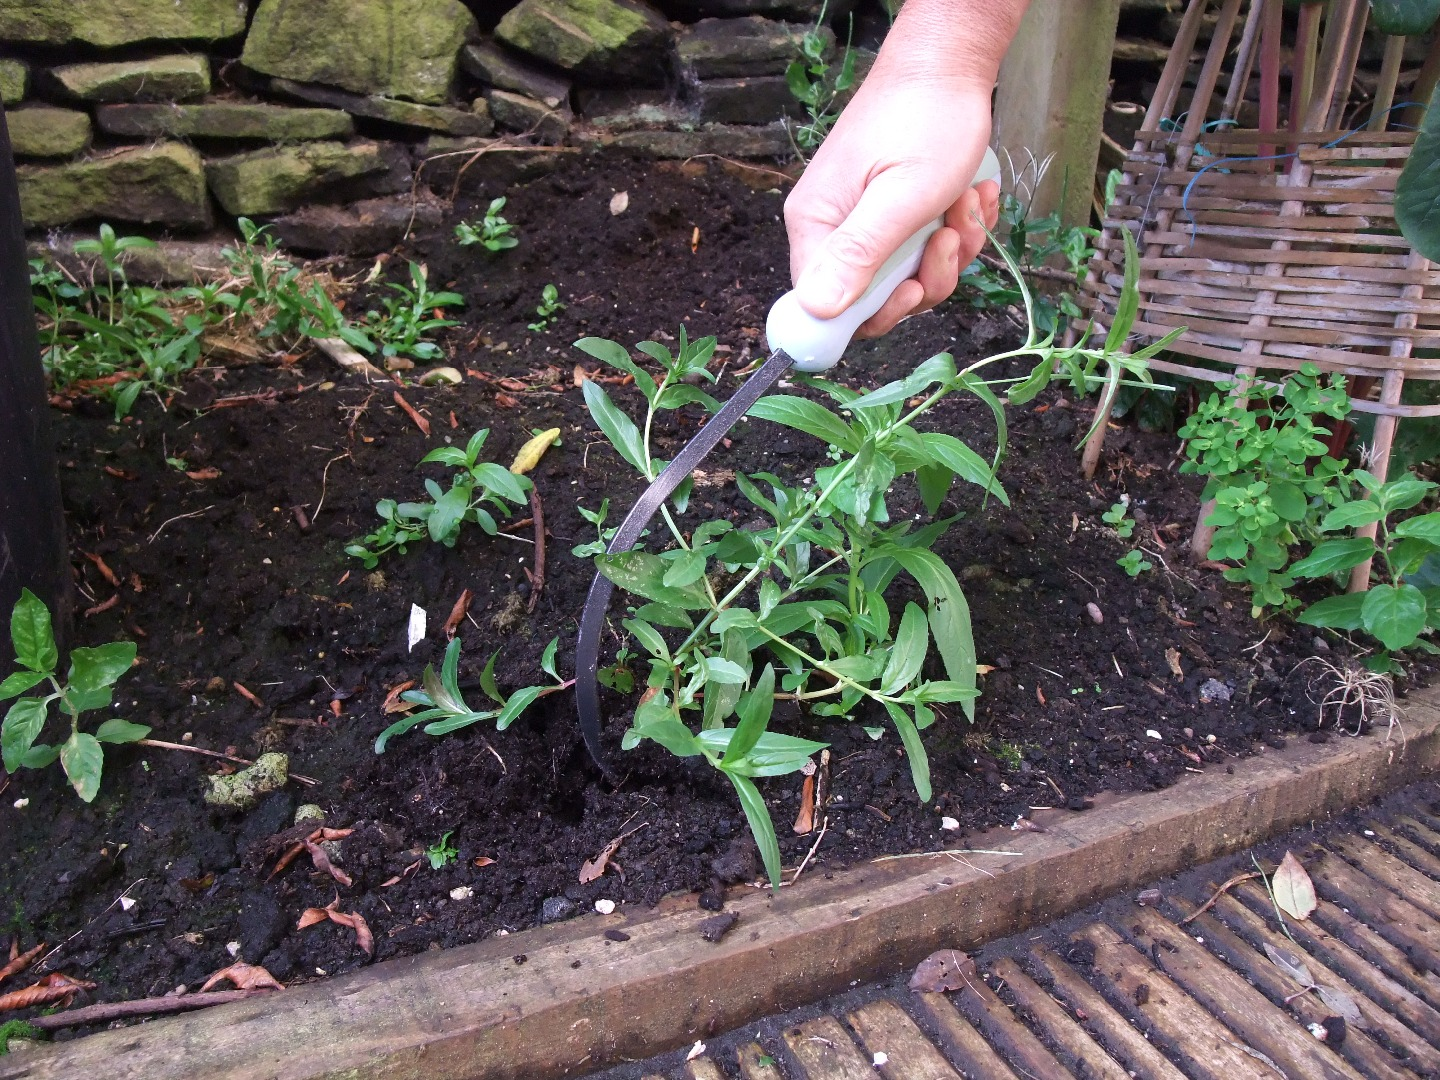 Cultimate weeder with an ergonomically designed handle for left and right handers